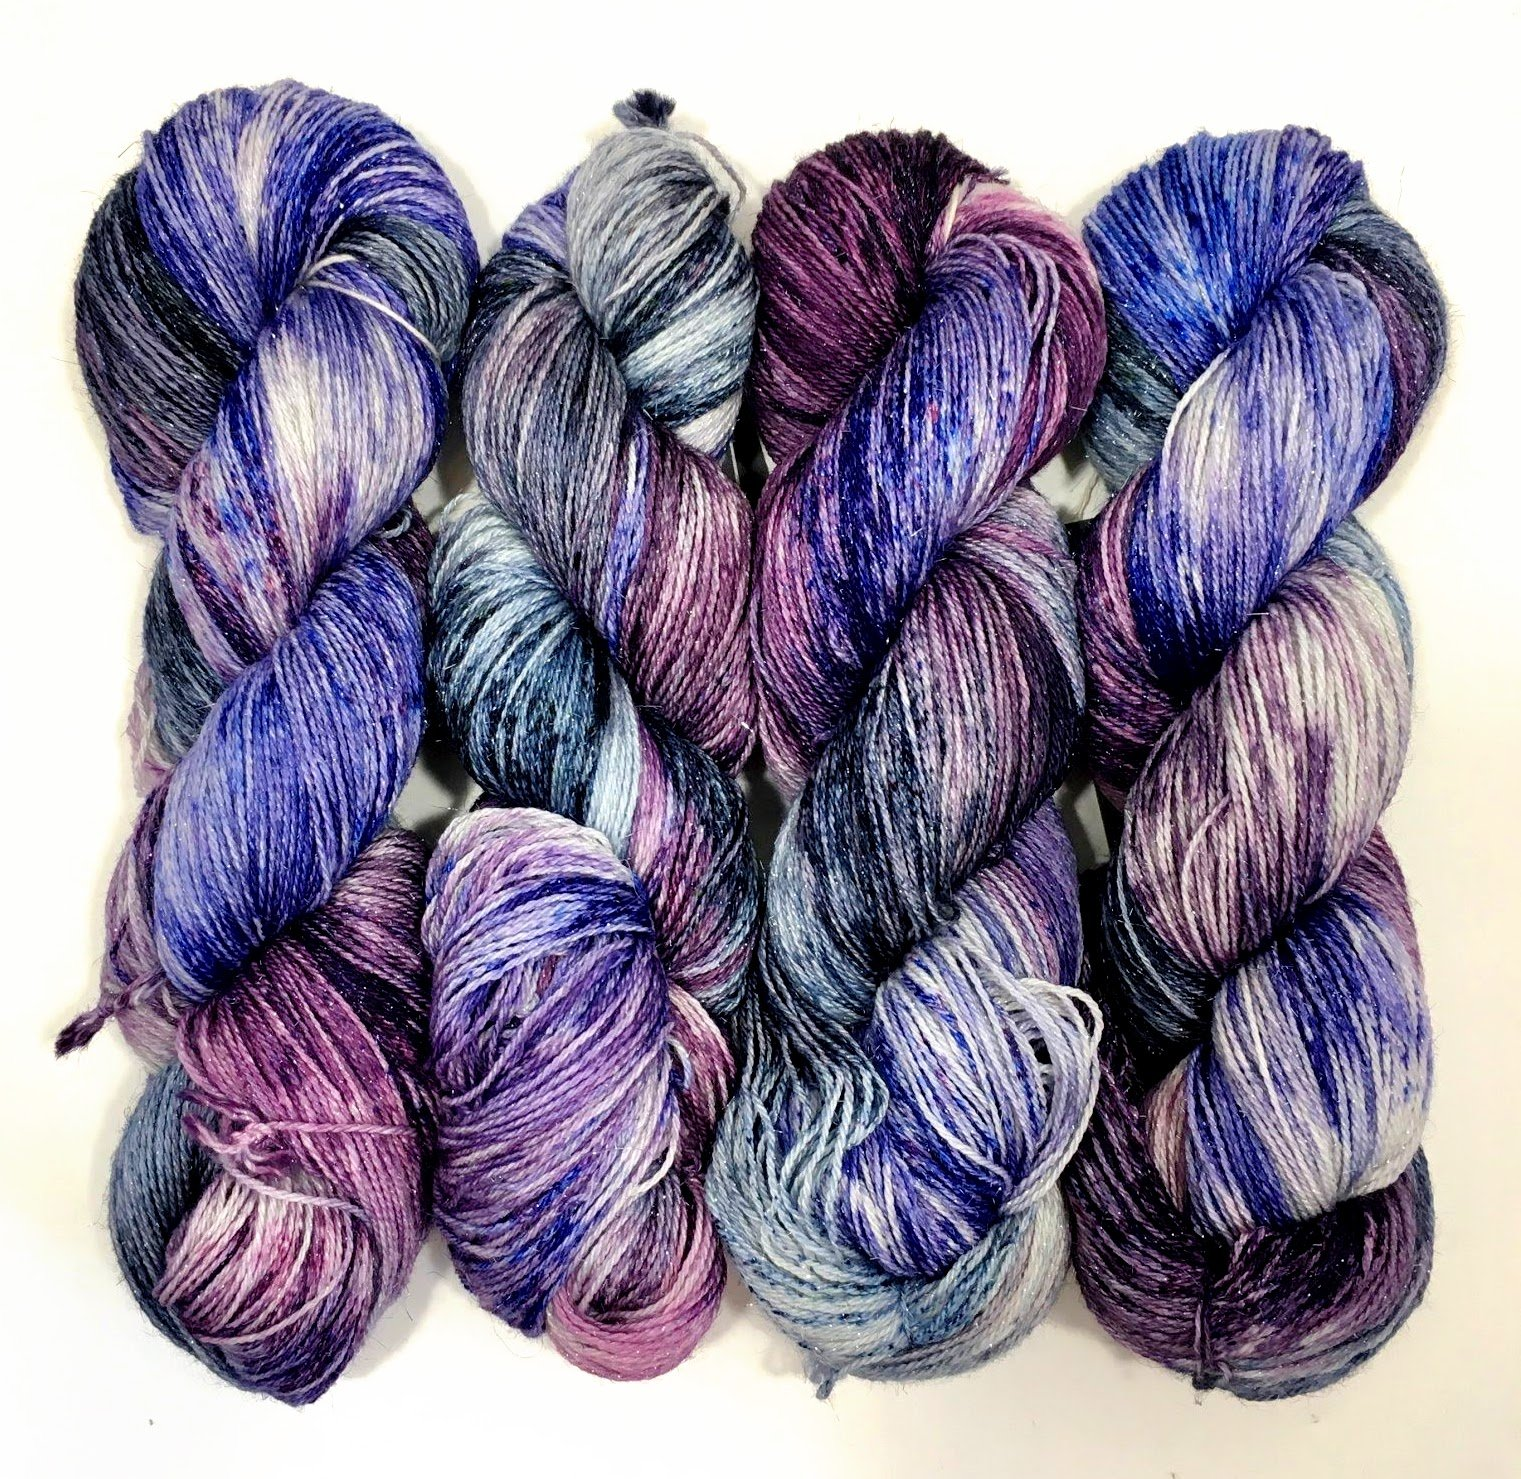 PREORDER: Alive with Purpose Yarn - Sparkle Fingering - All Hail the Purple One